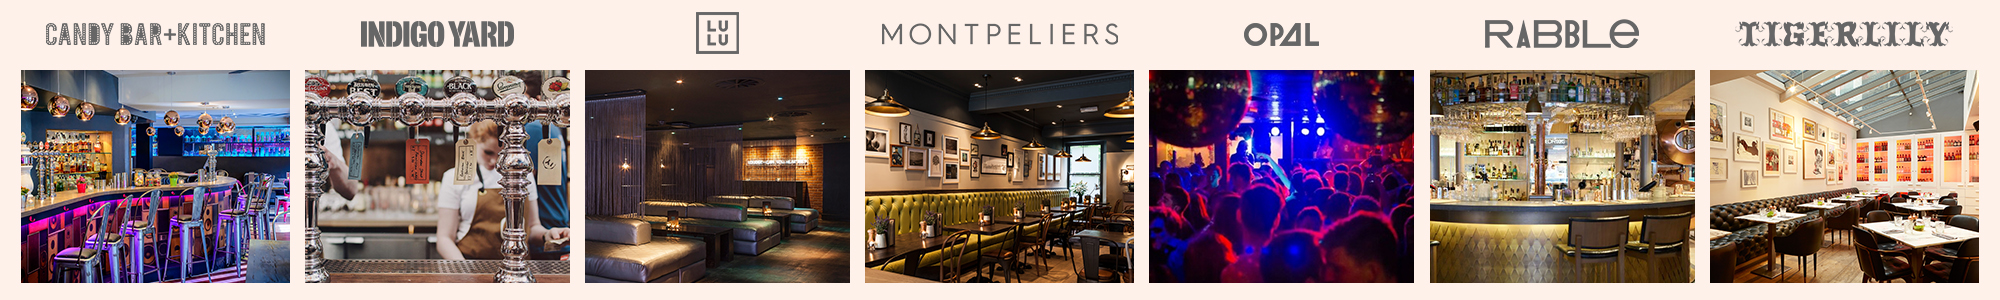 Montpeliers